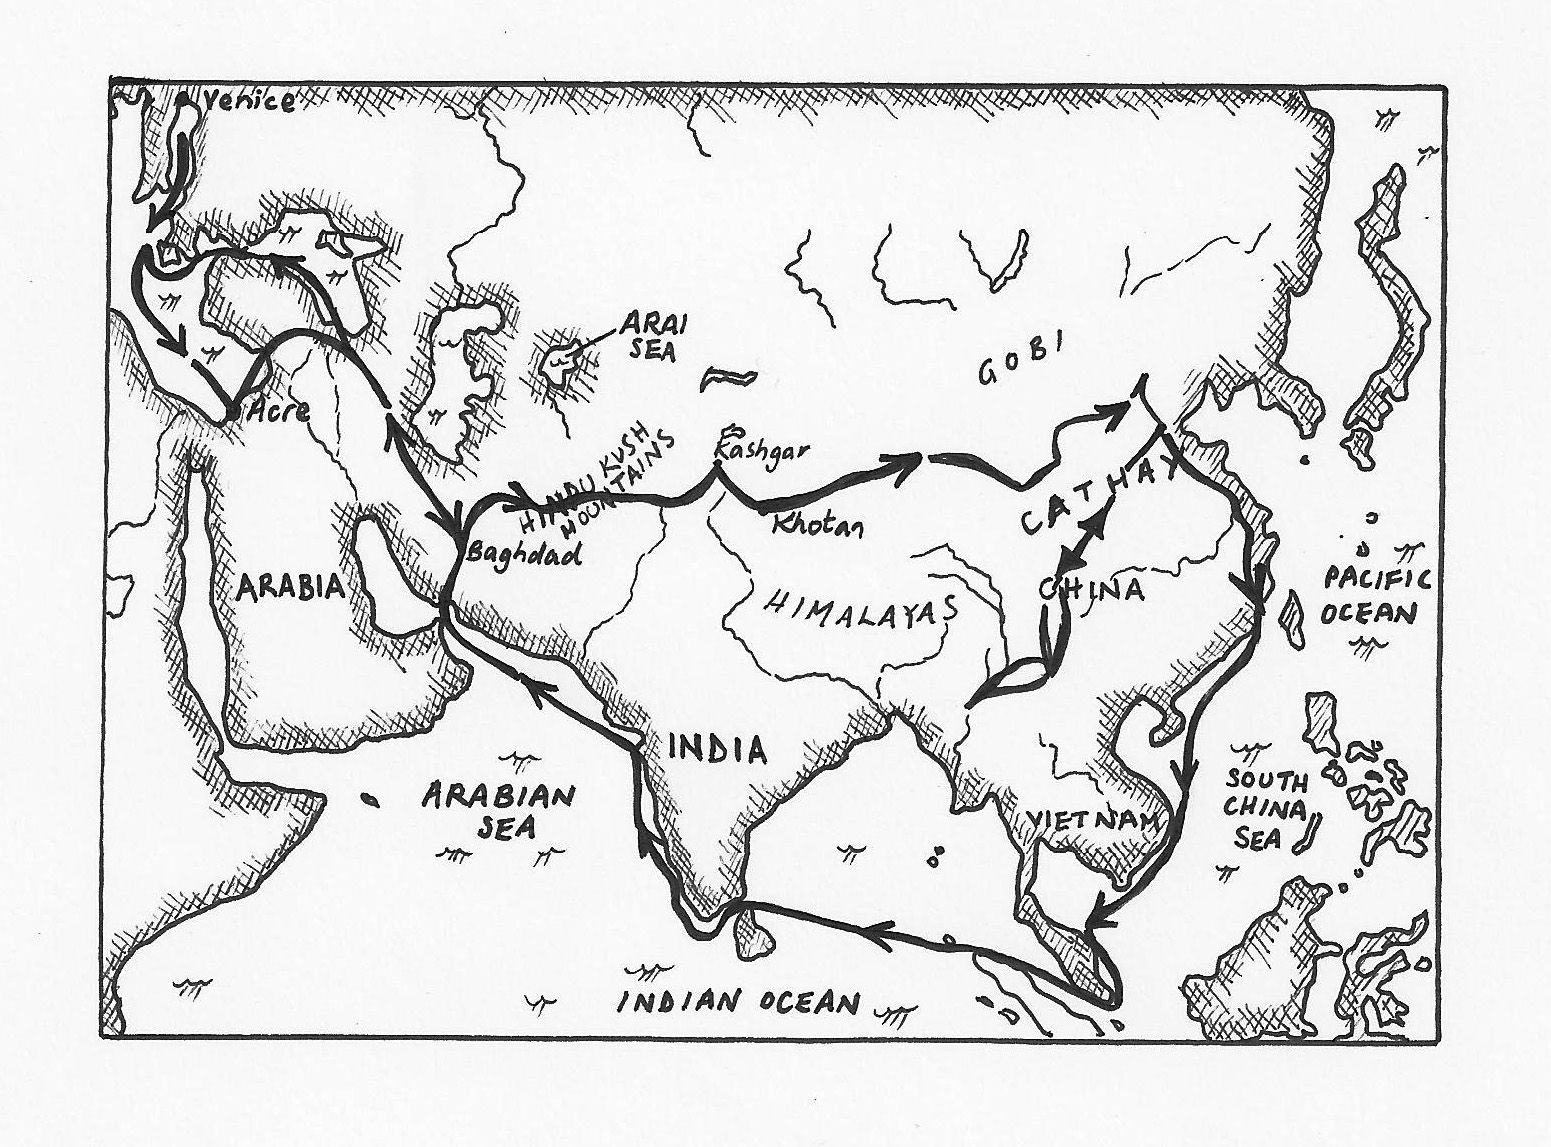 Beautiful black and white map of Marco Polo's journey. We